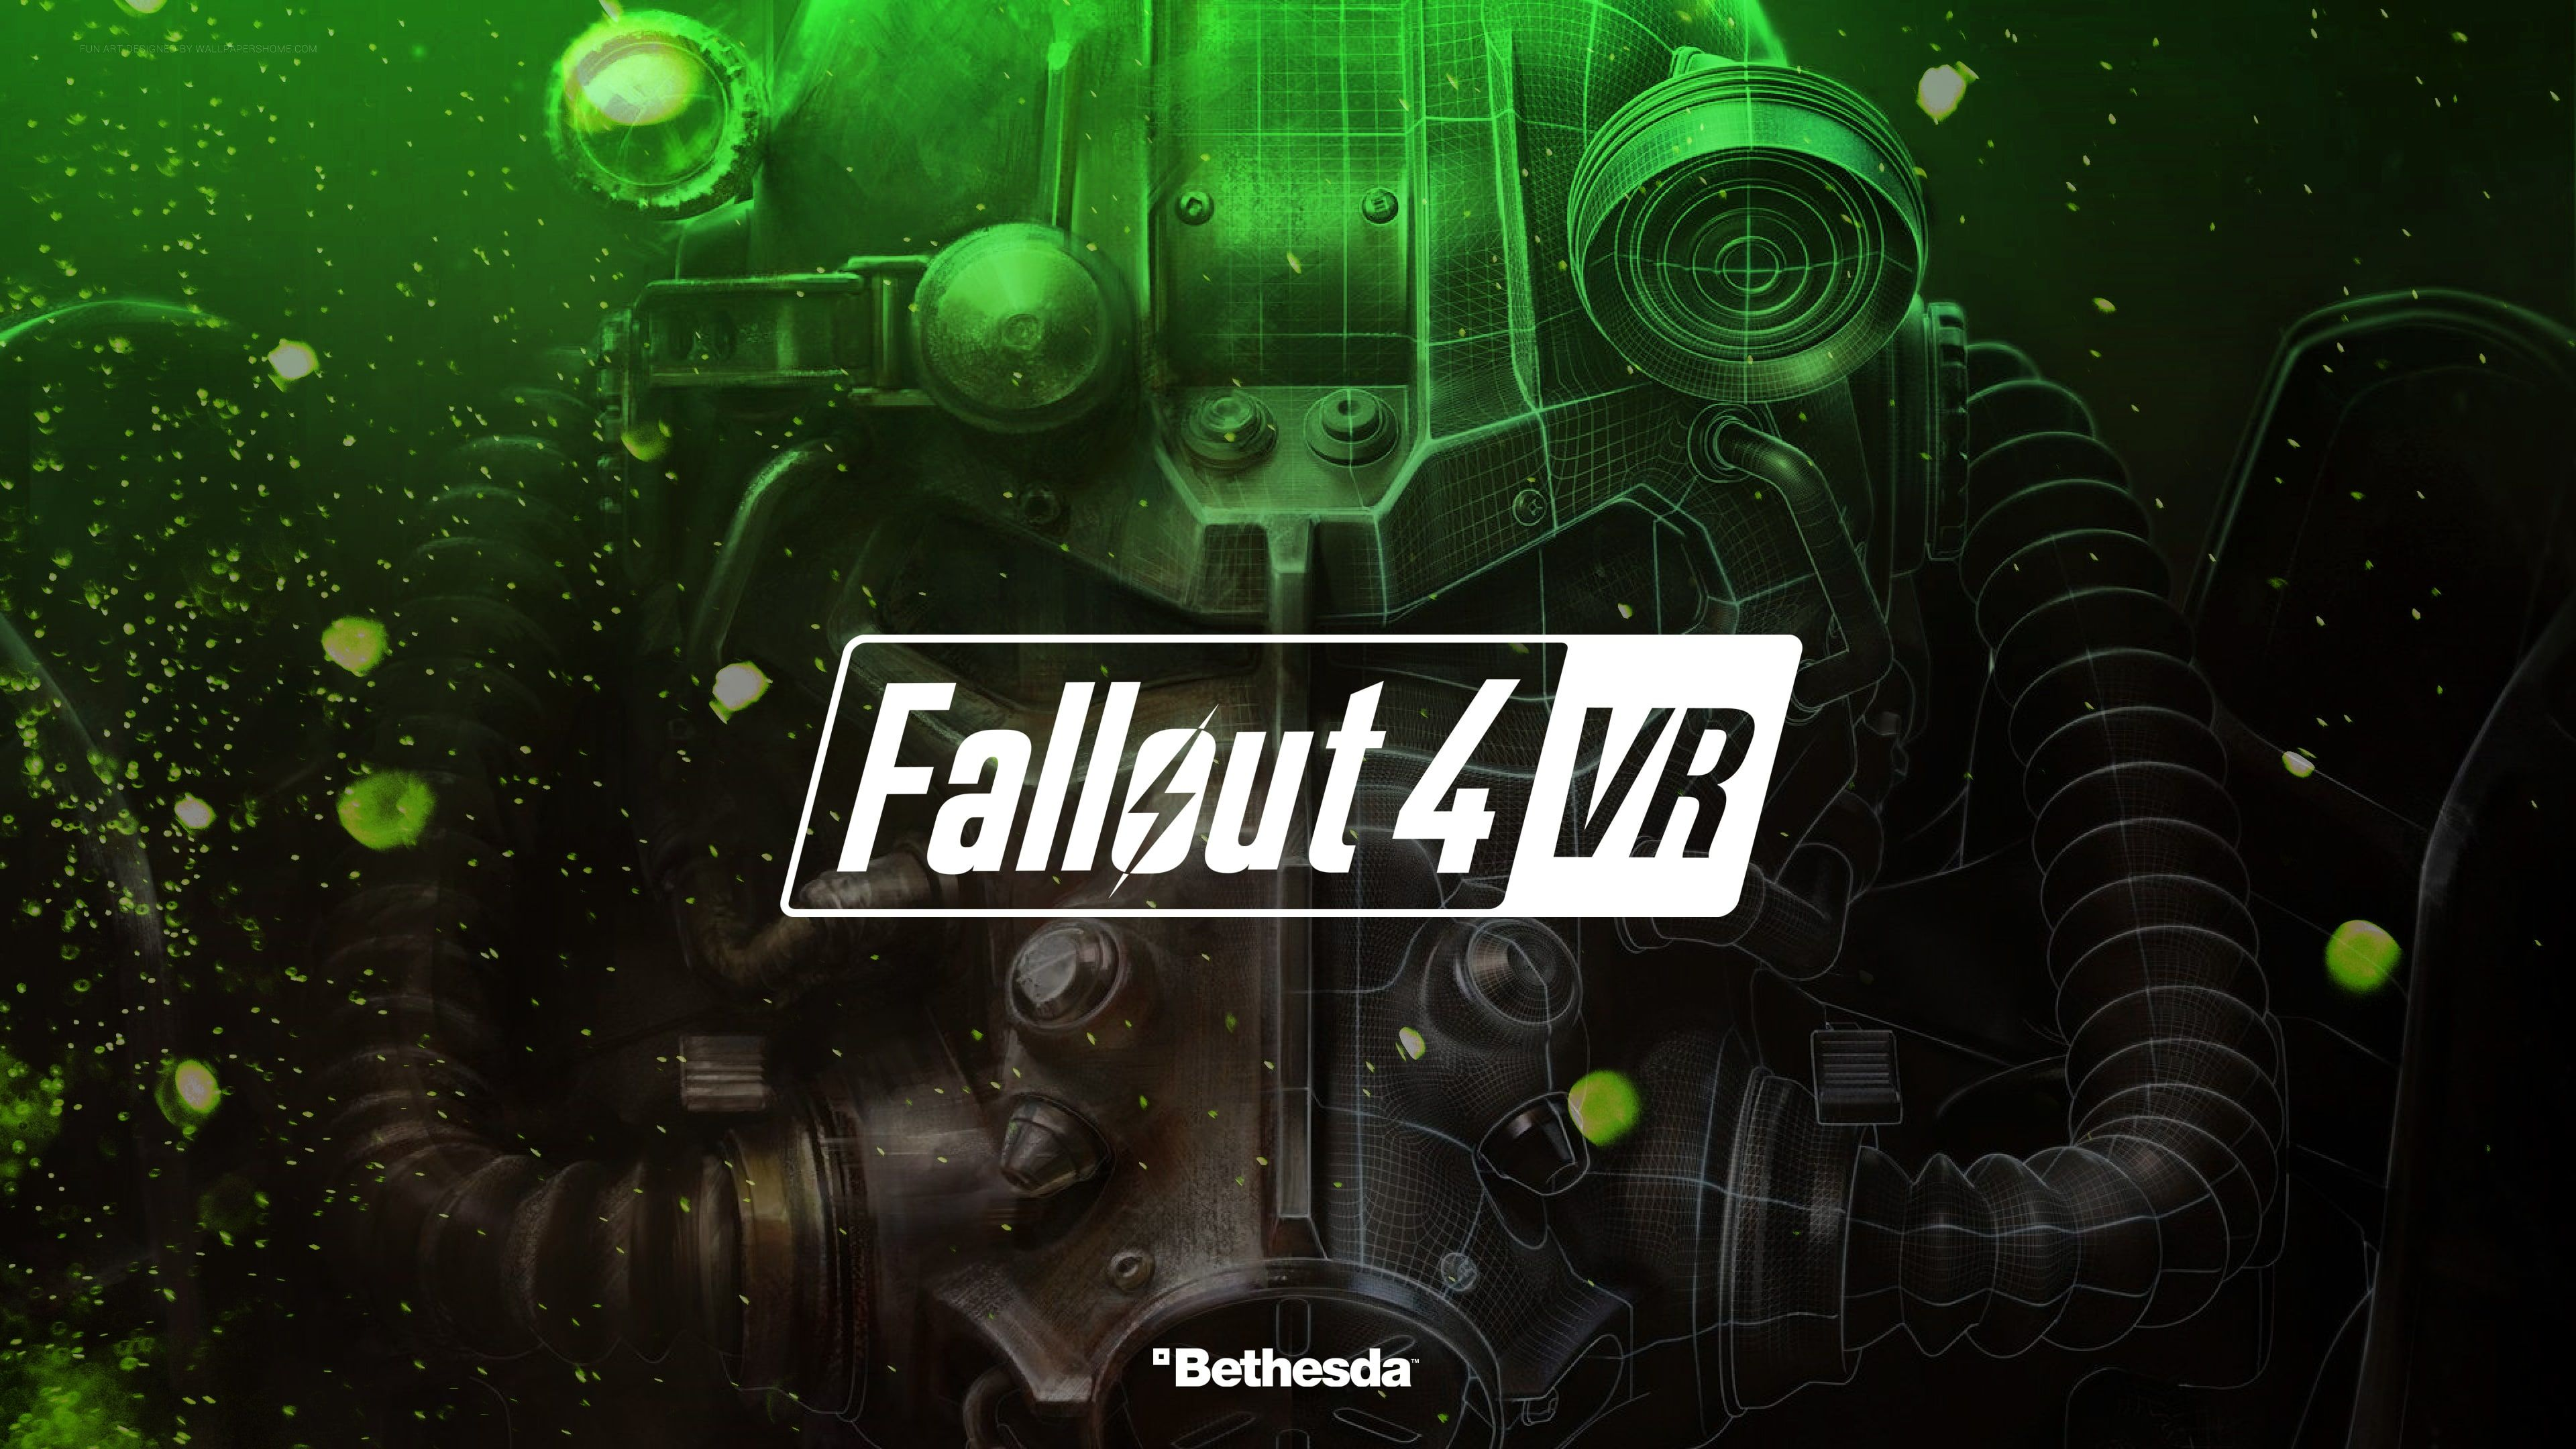 Fallout Vr Game Is An HD Desktop Wallpaper Posted In Our Free Image Collection Of Gaming Wallpapers You Can Download High